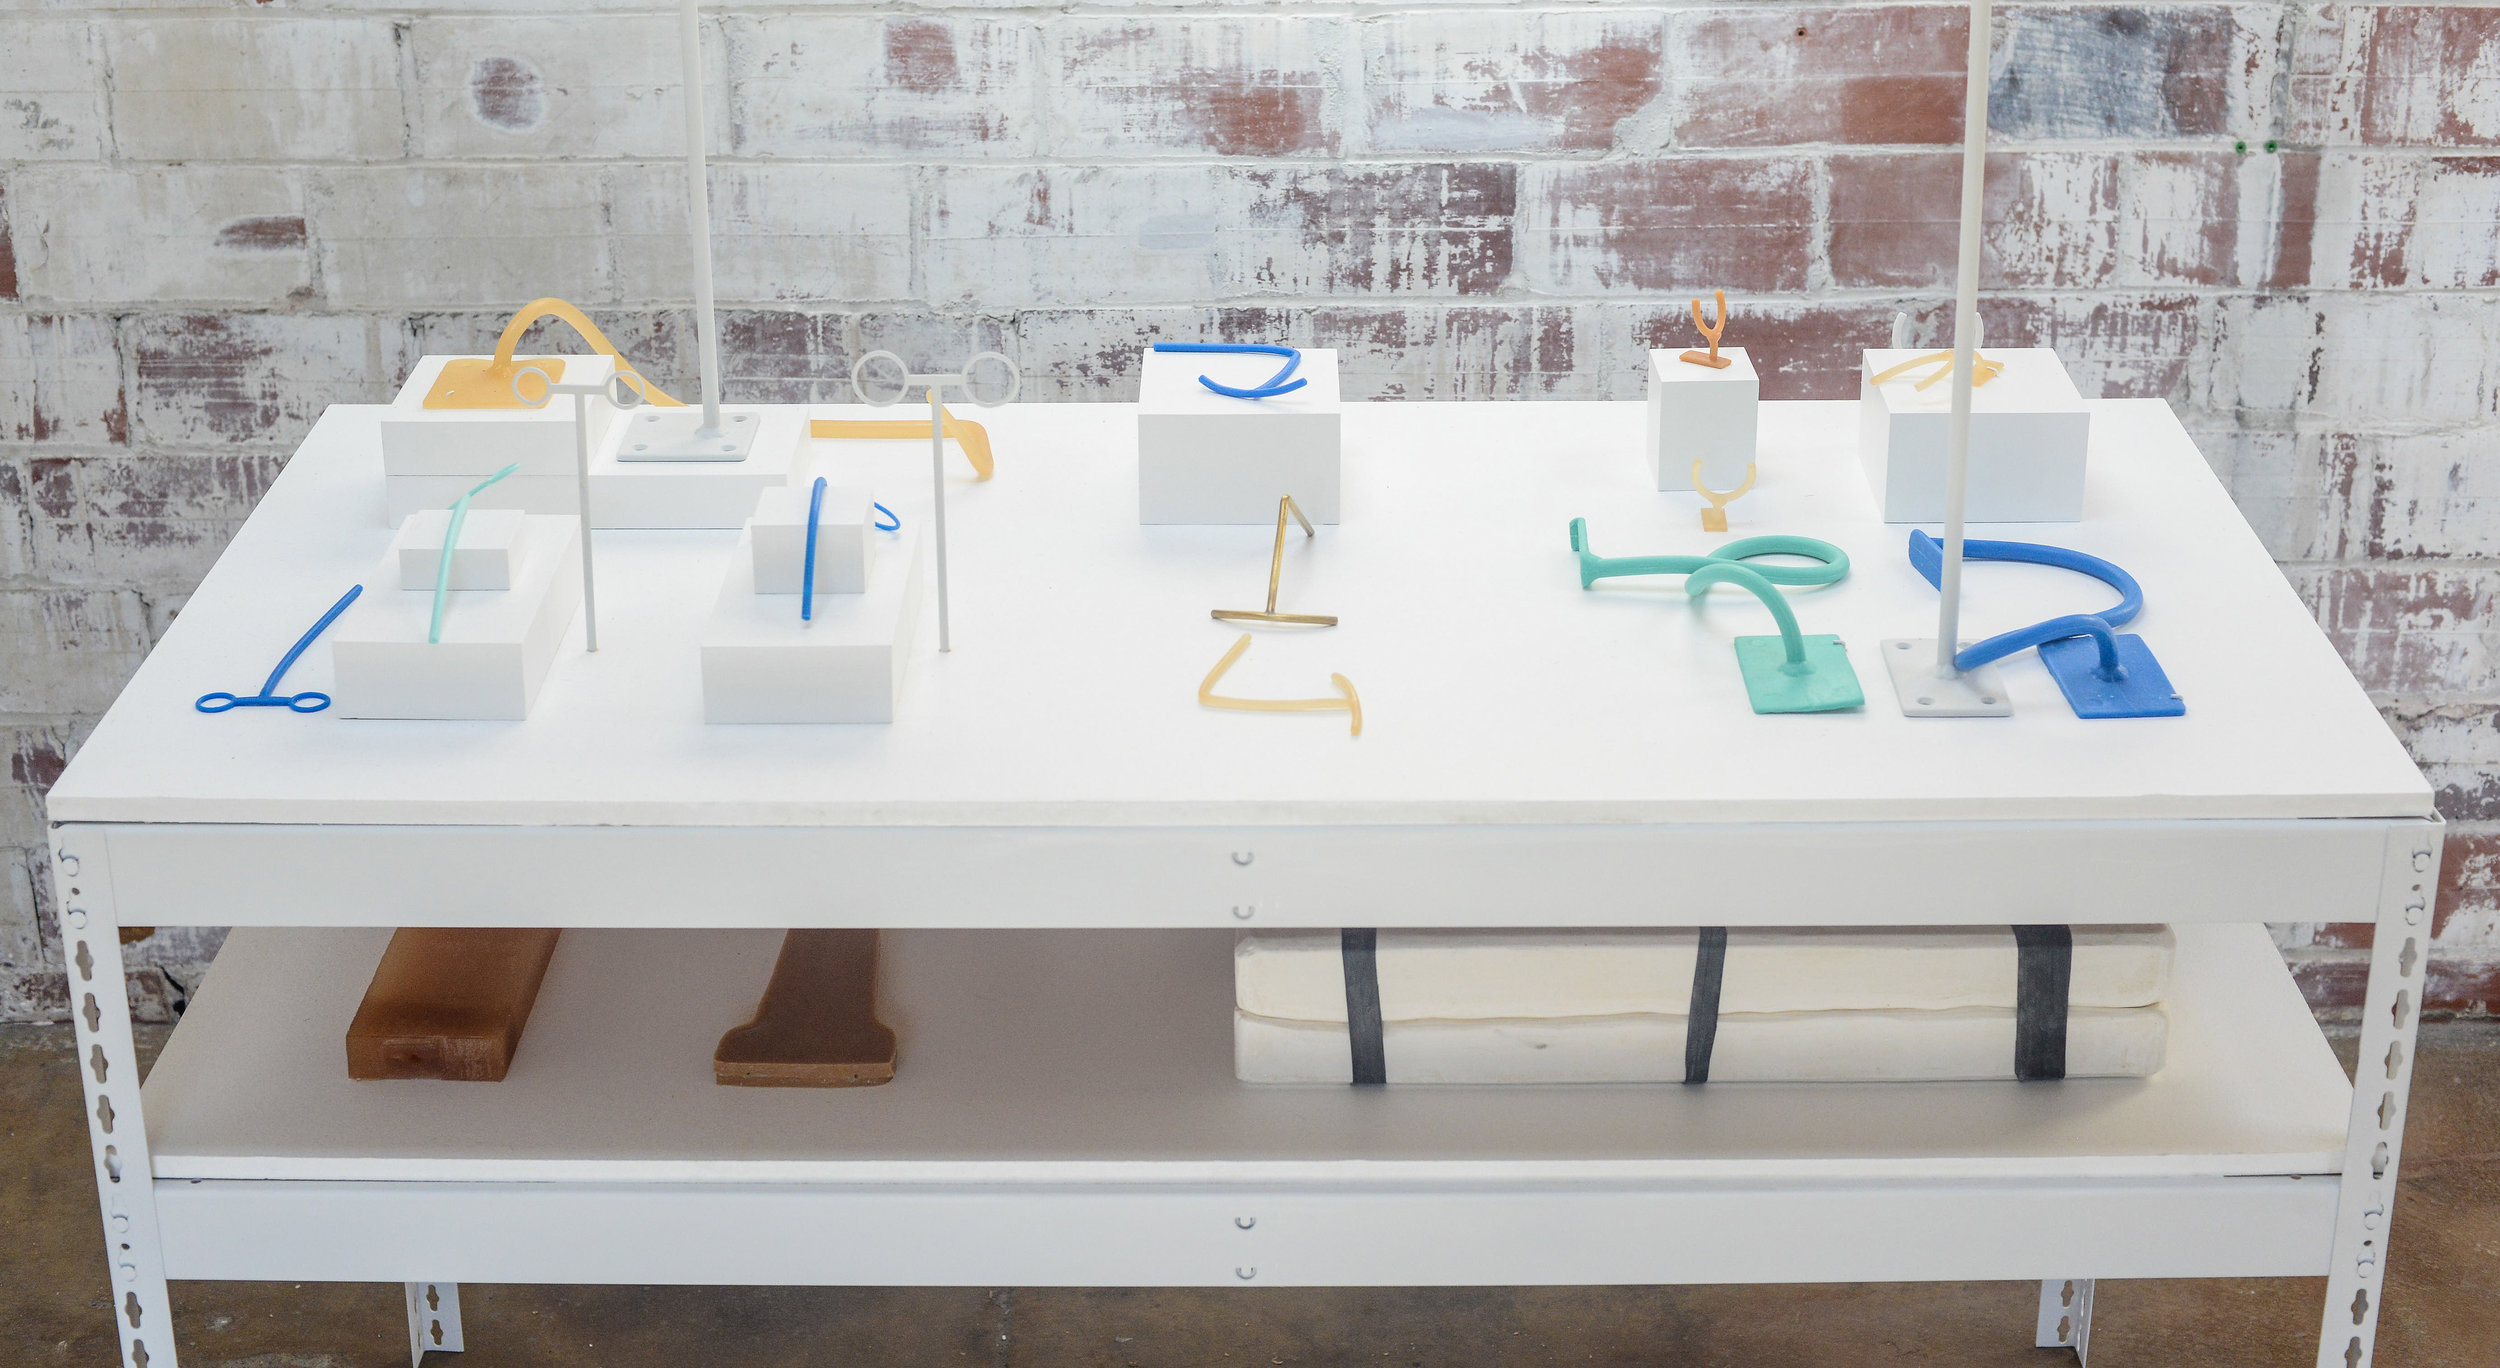 Dana Hemenway, Untitled (Object Mounts), 2015. Silicone, urethane, plaster, brass and steel object mounts borrowed from the Oakland Museum of California, bolt-less storage shelf, wood.